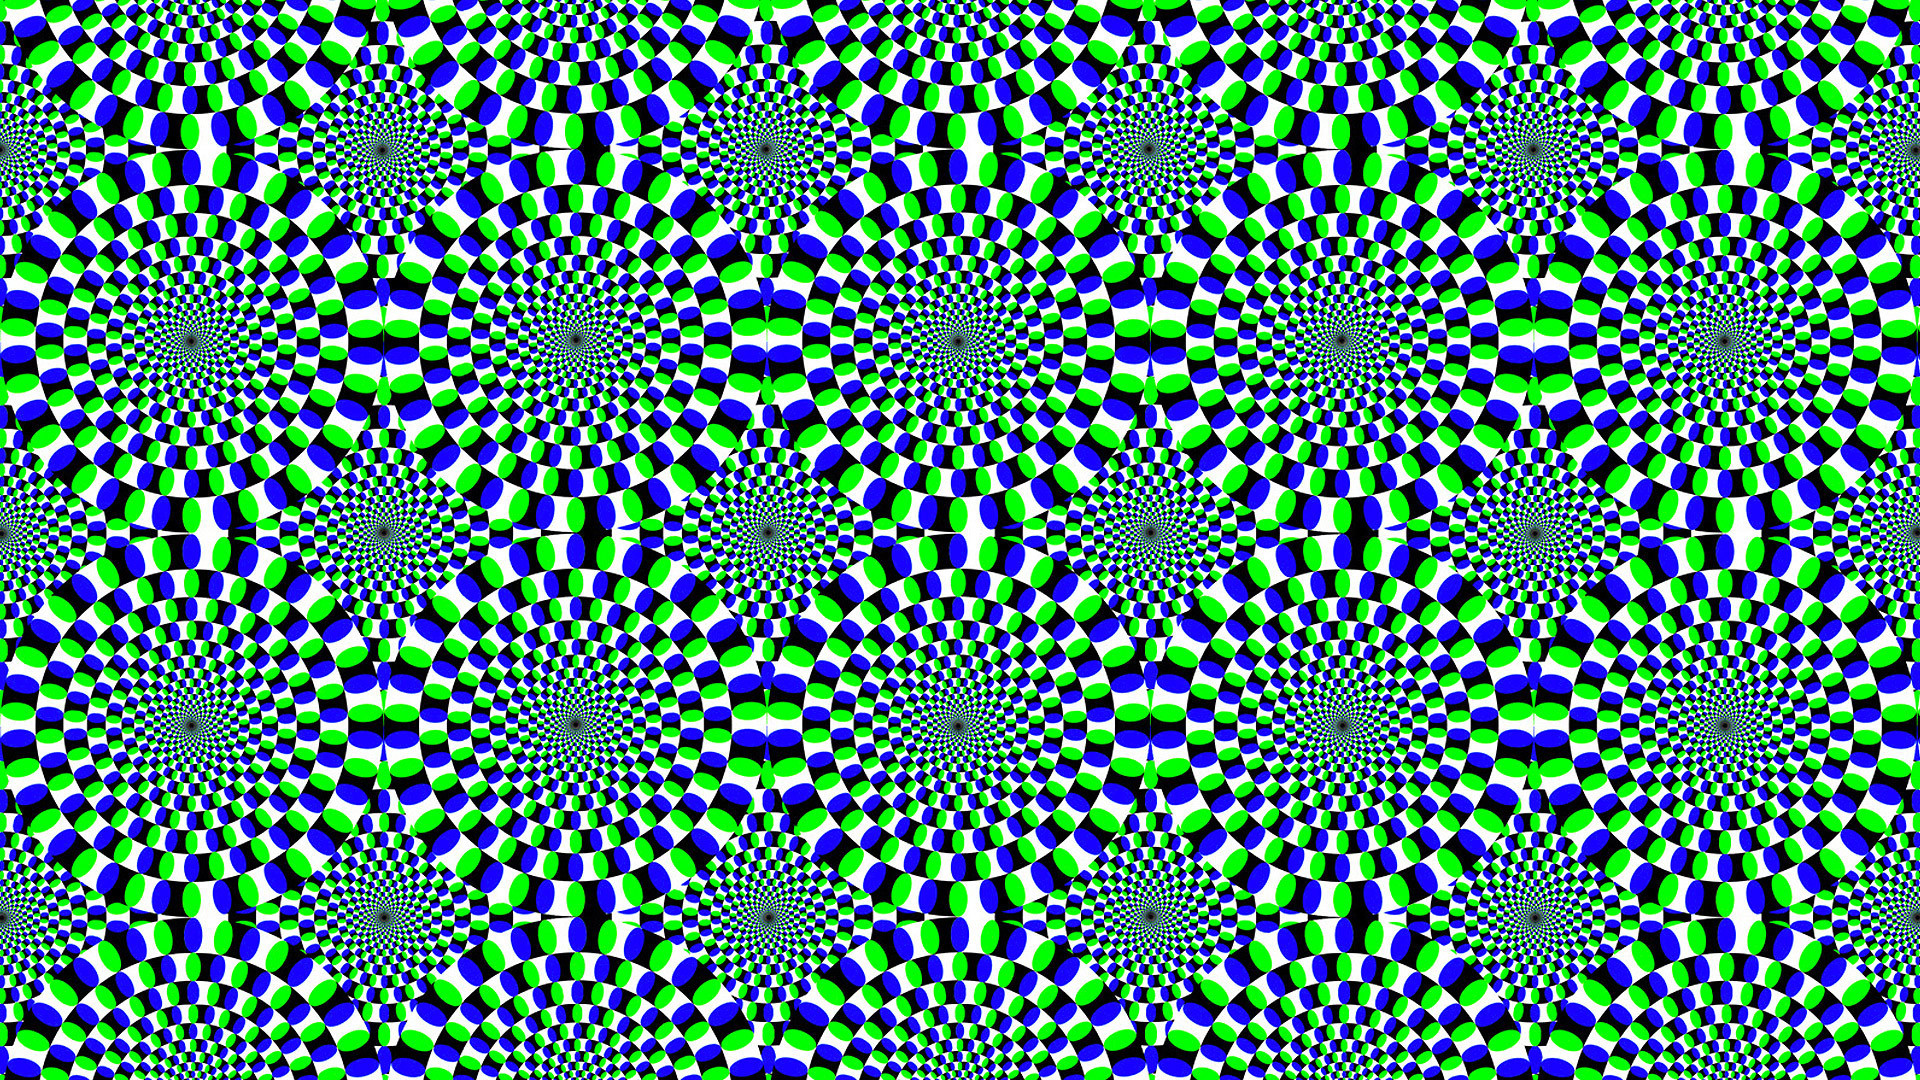 1920x1080 1920x1080 Gallery for Moving Illusion Backgrounds. Other Resolution: Cool Optical Illusion Wallpapers Backgrounds Hd for Iphone Ipod Touch